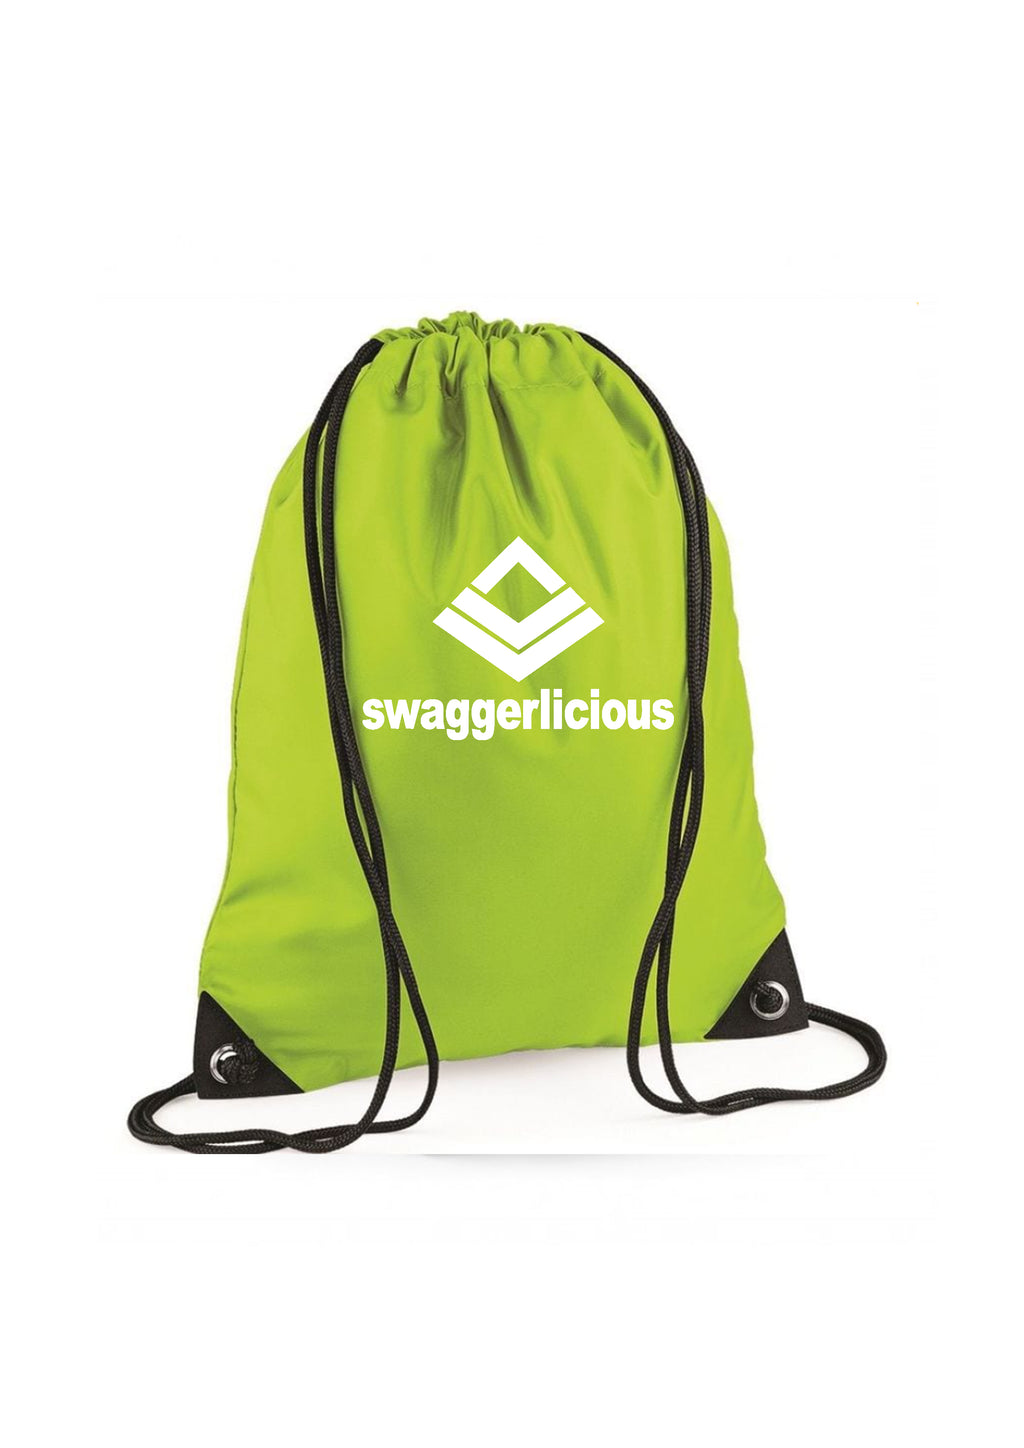 LIME GREEN SWAGGERLICIOUS GYM SACK - swaggerlicious-clothing.com